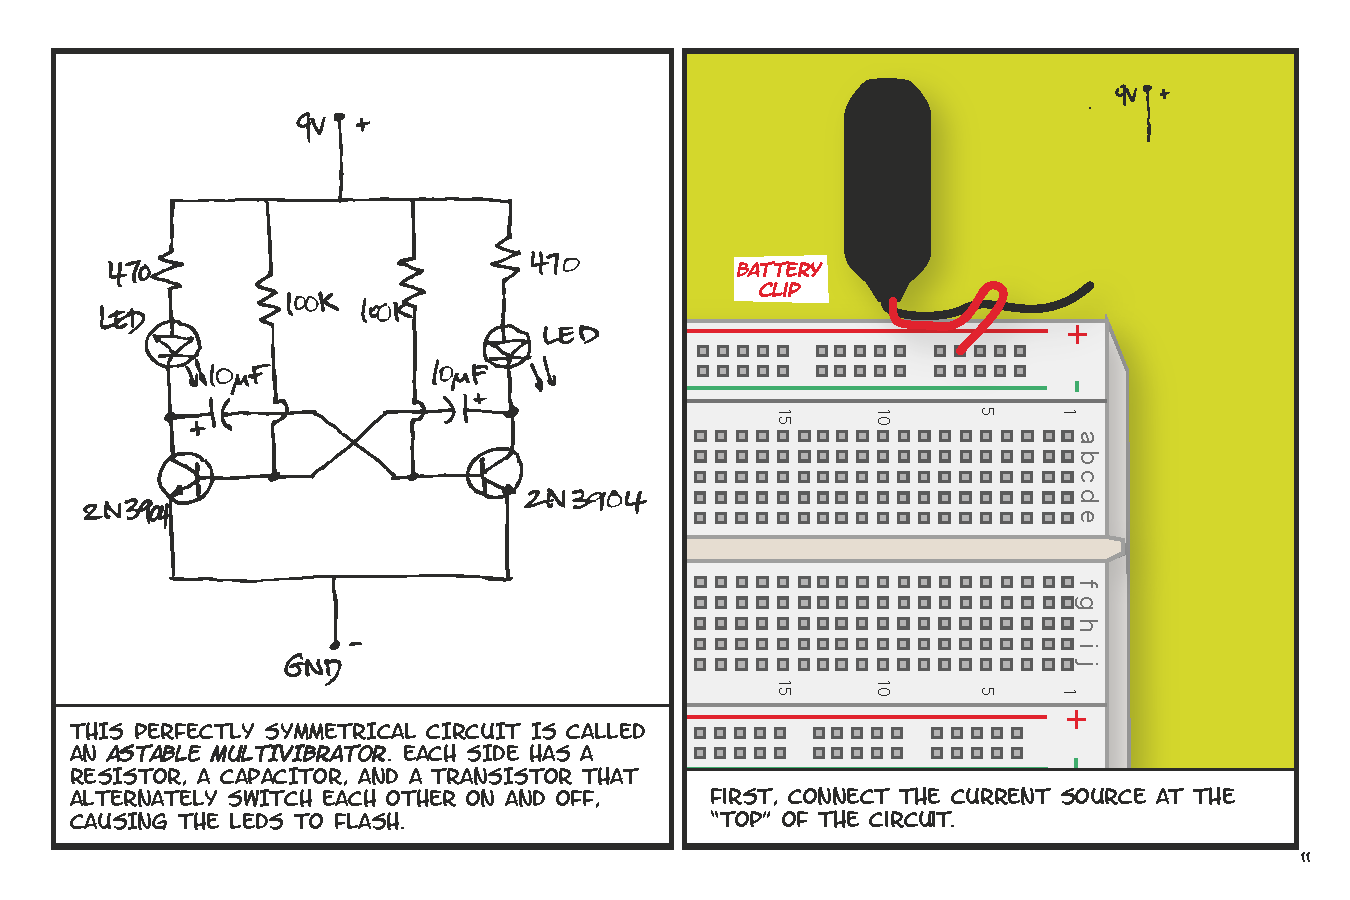 Page 11 How To Use A Breadboard Book Bread Board Diagram With Safari You Learn The Way Best Get Unlimited Access Videos Live Online Training Learning Paths Books Interactive Tutorials And More